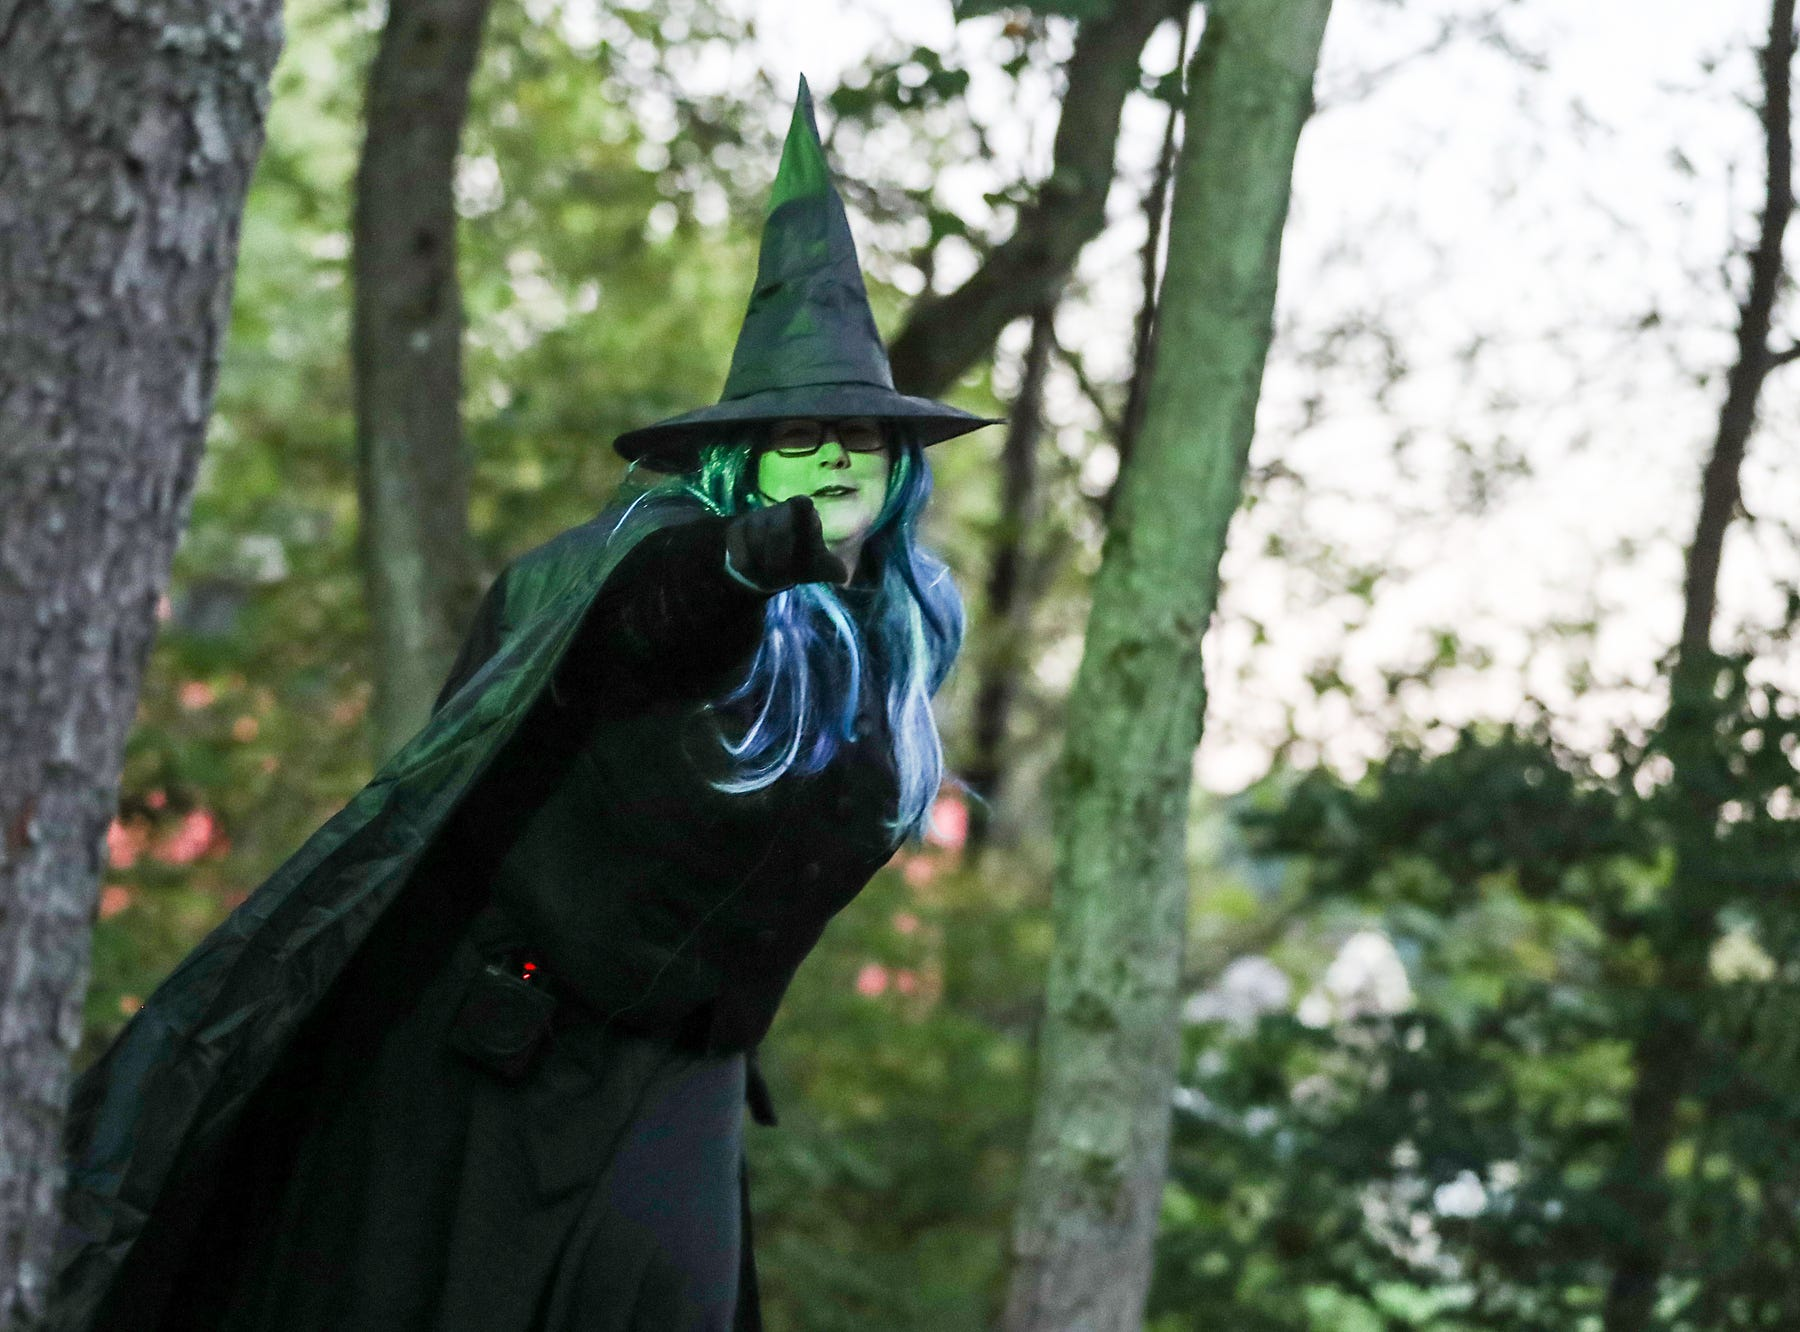 A witch is seen along the haunted hayride route on opening night of the annual Headless Horseman Halloween festival at Conner Prairie in Fishers, Ind., Thursday, Oct. 11, 2018. The festival is held from 6 to 9 p.m. every Thursday through Sunday, ending Oct. 28, 2018.